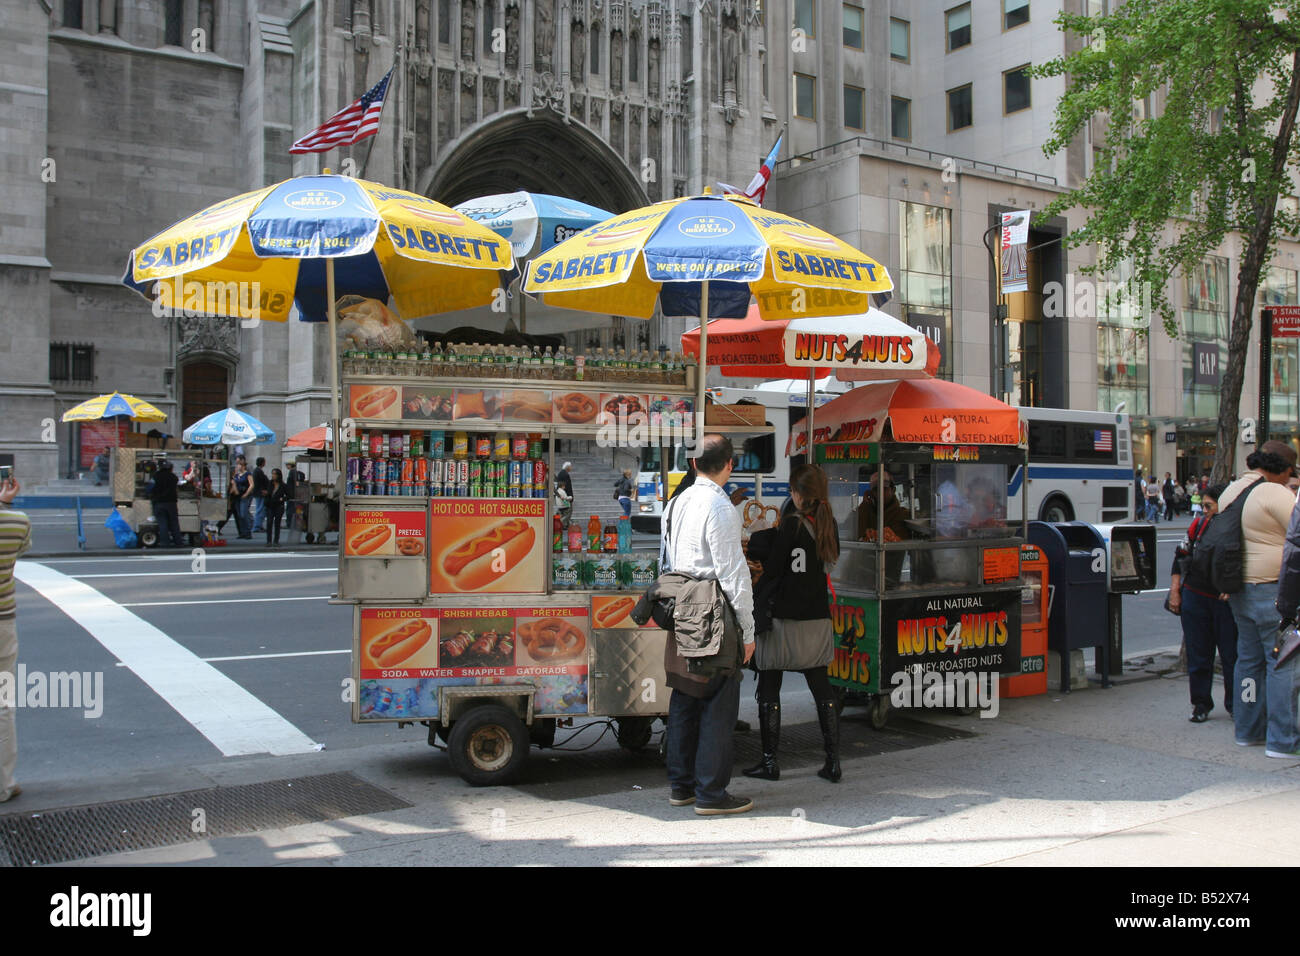 Auto Sale Shops Near Me: New York City Street Vendors Selling Hot Dogs, And Candied